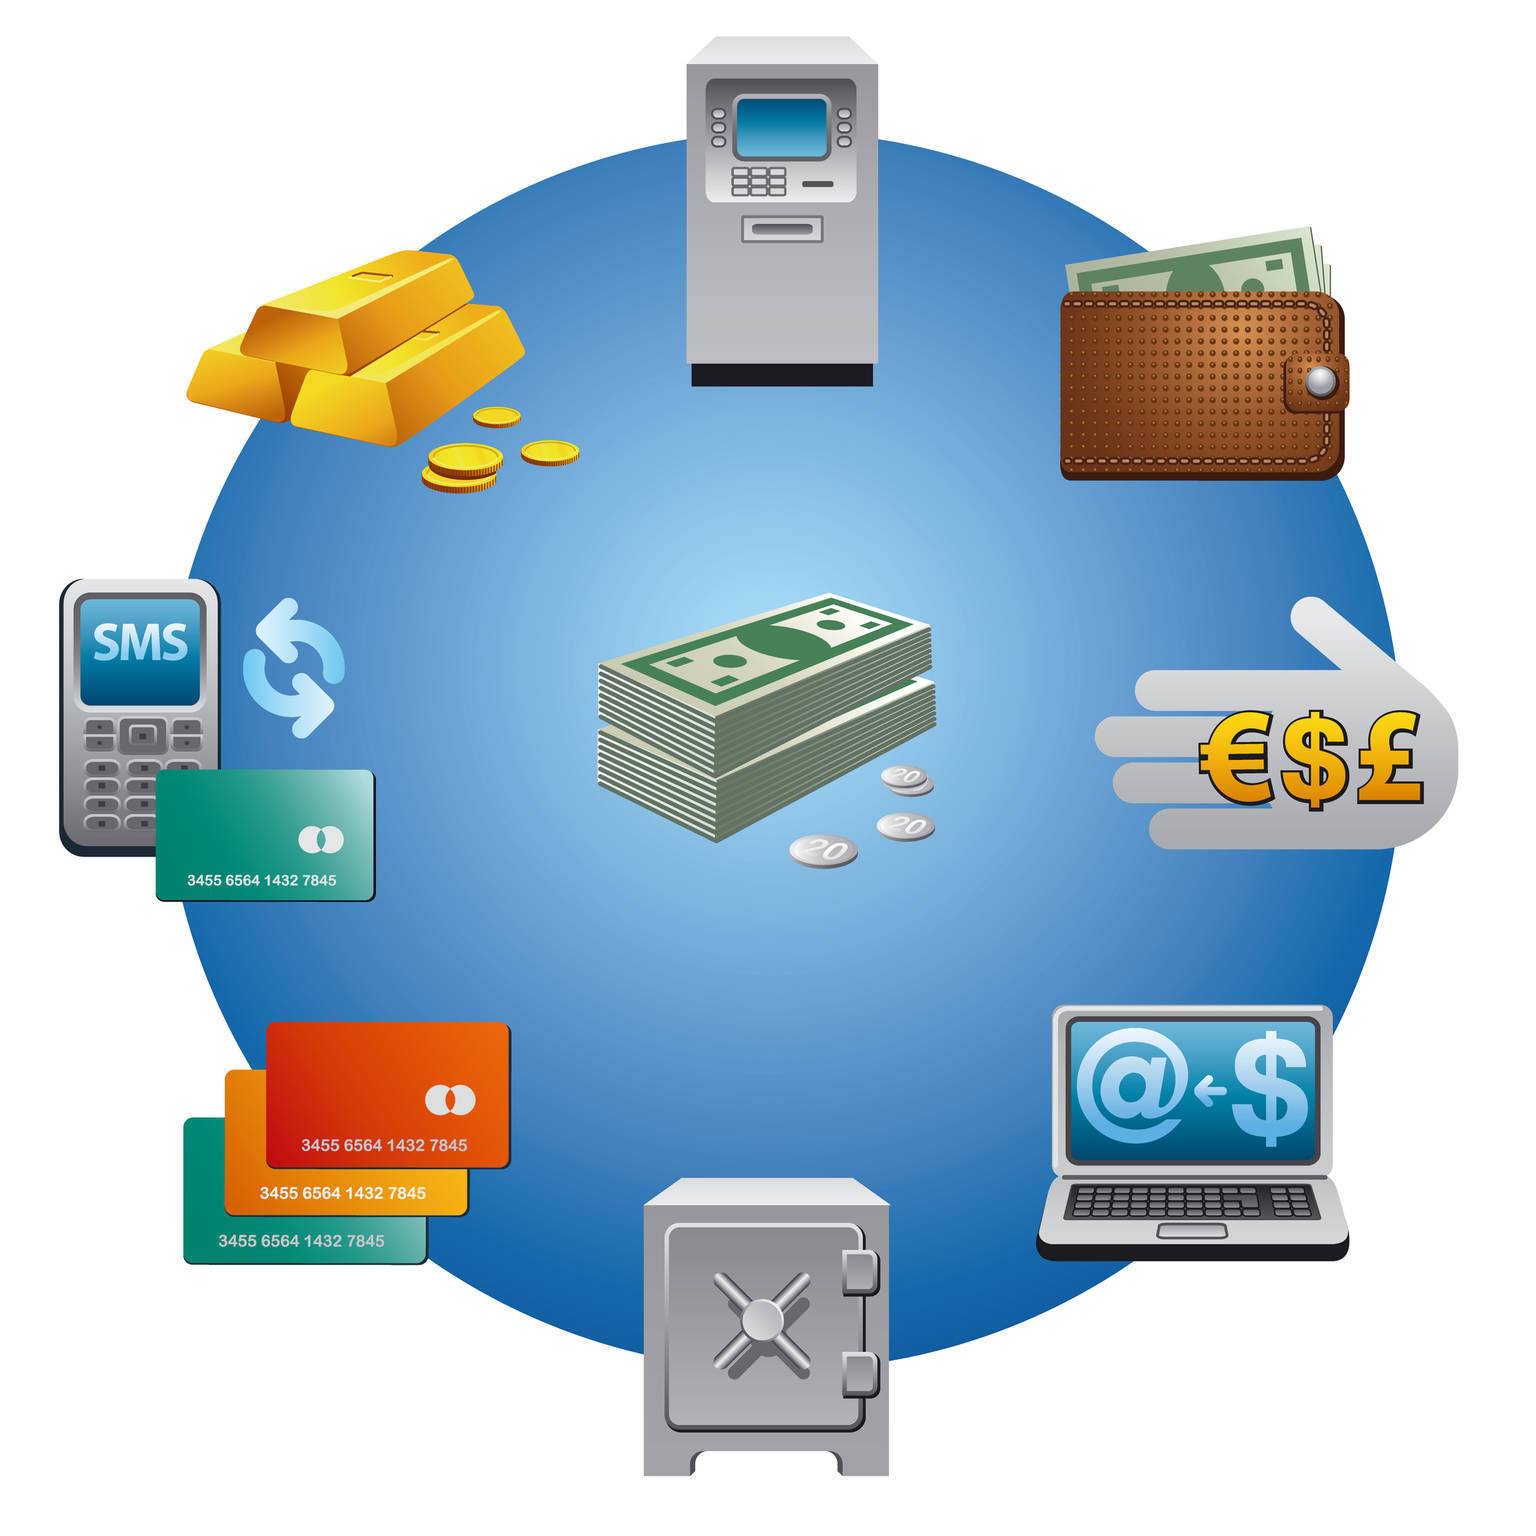 banking types of banking services A commercial bank is a type of financial institution that accepts deposits, offers checking and savings account services, and makes loans.